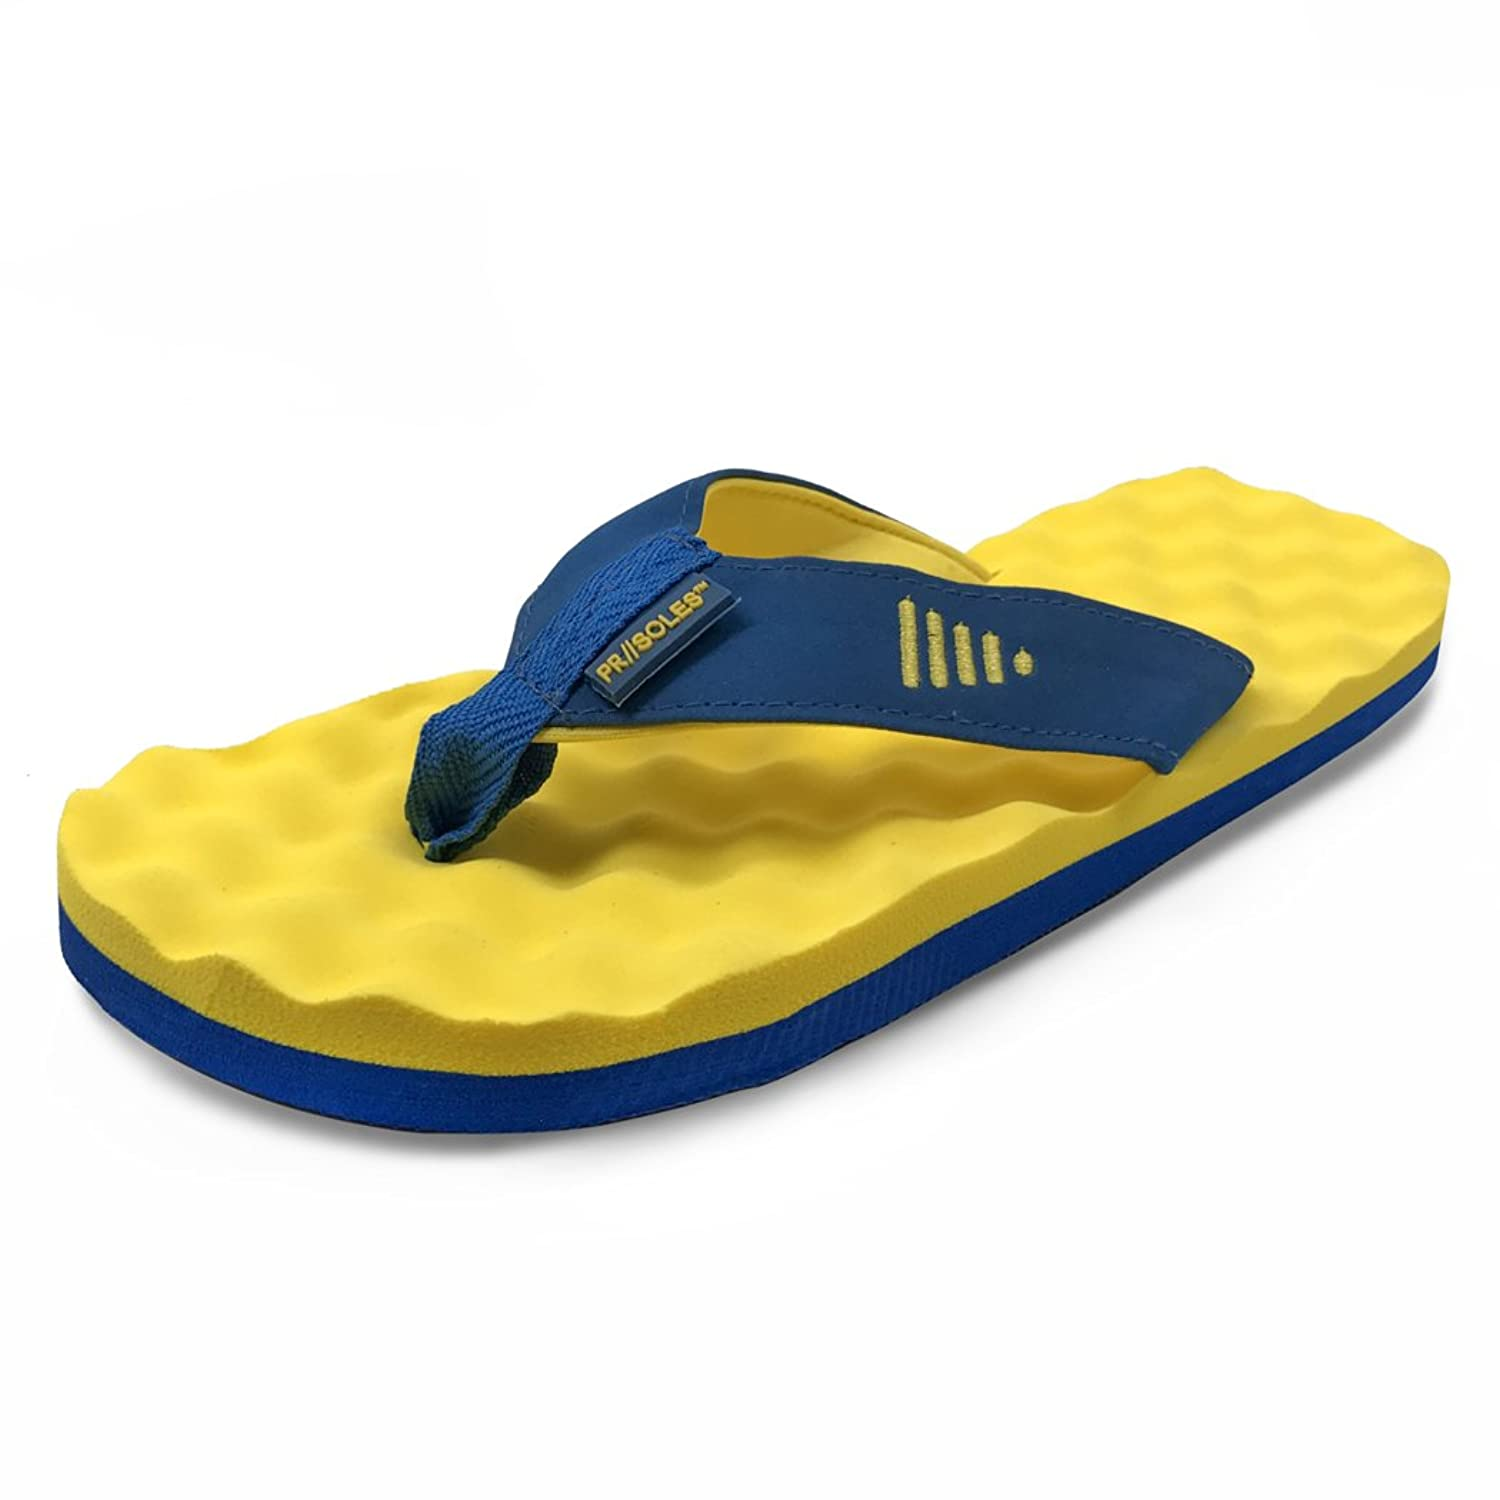 Unisex Non-slip Flip Flops Blue Volleyball Love Cool Beach Slippers Sandal